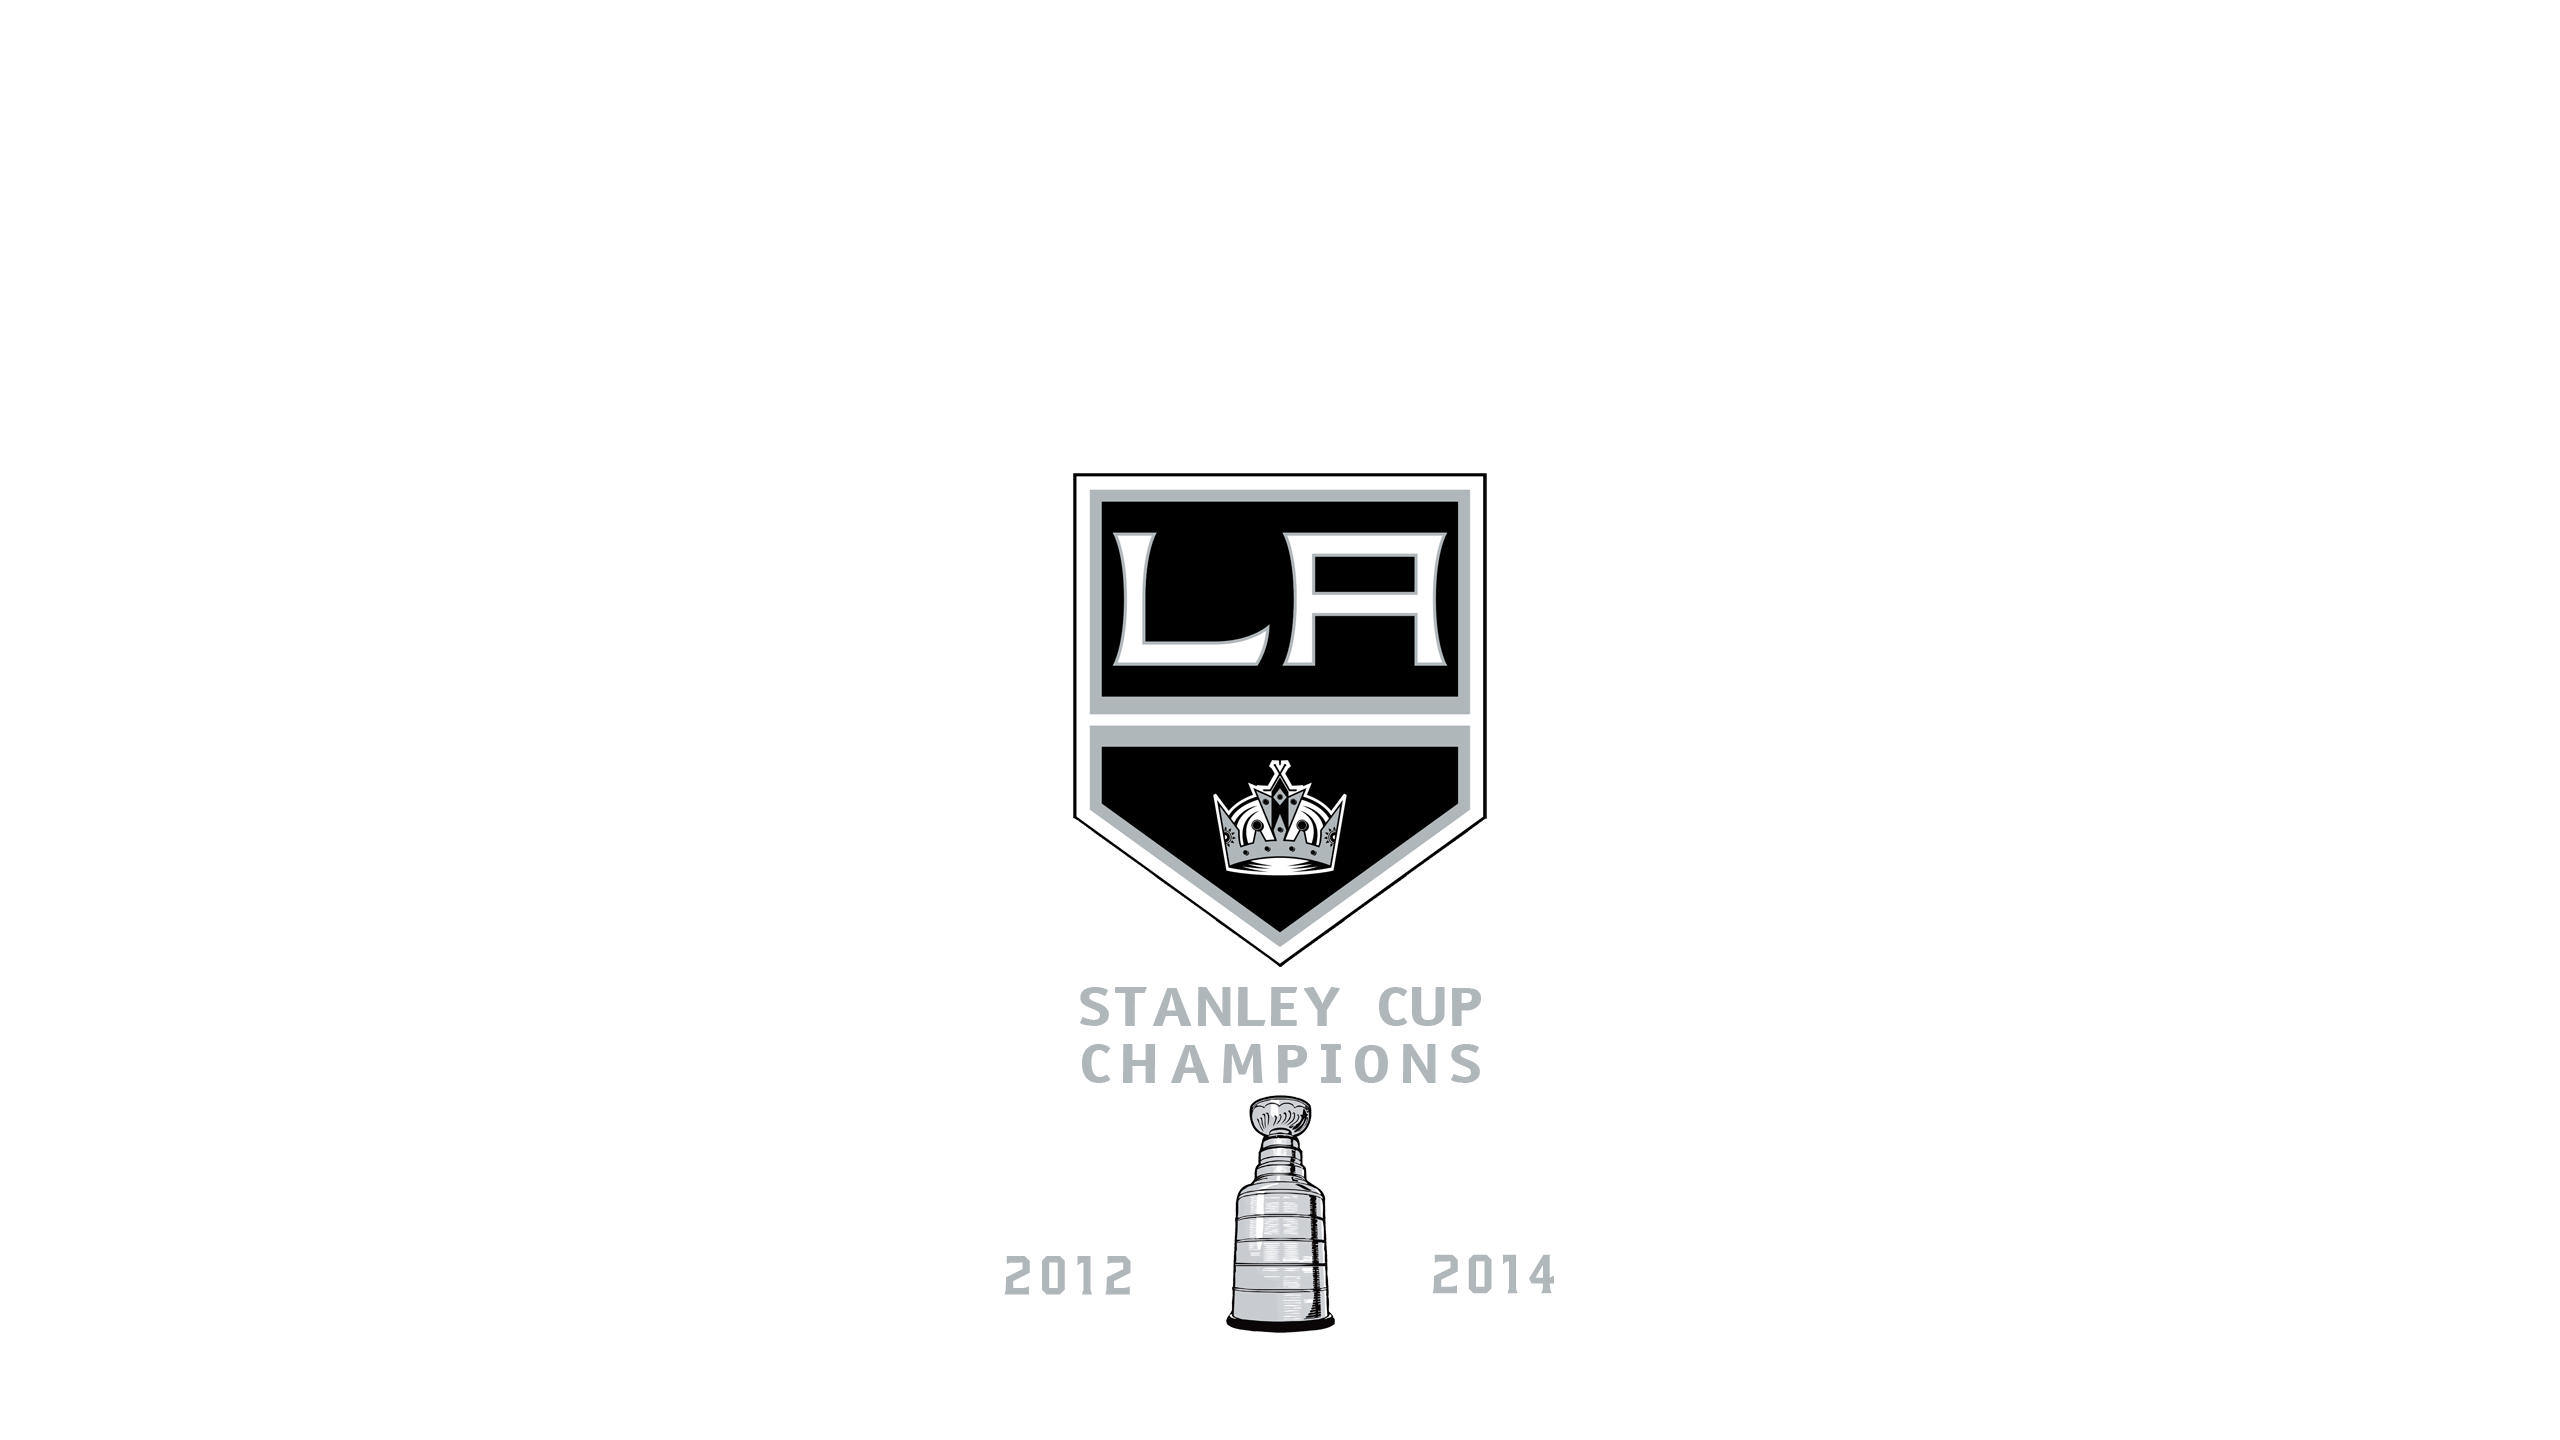 Los Angeles Kings - Stanley Cup